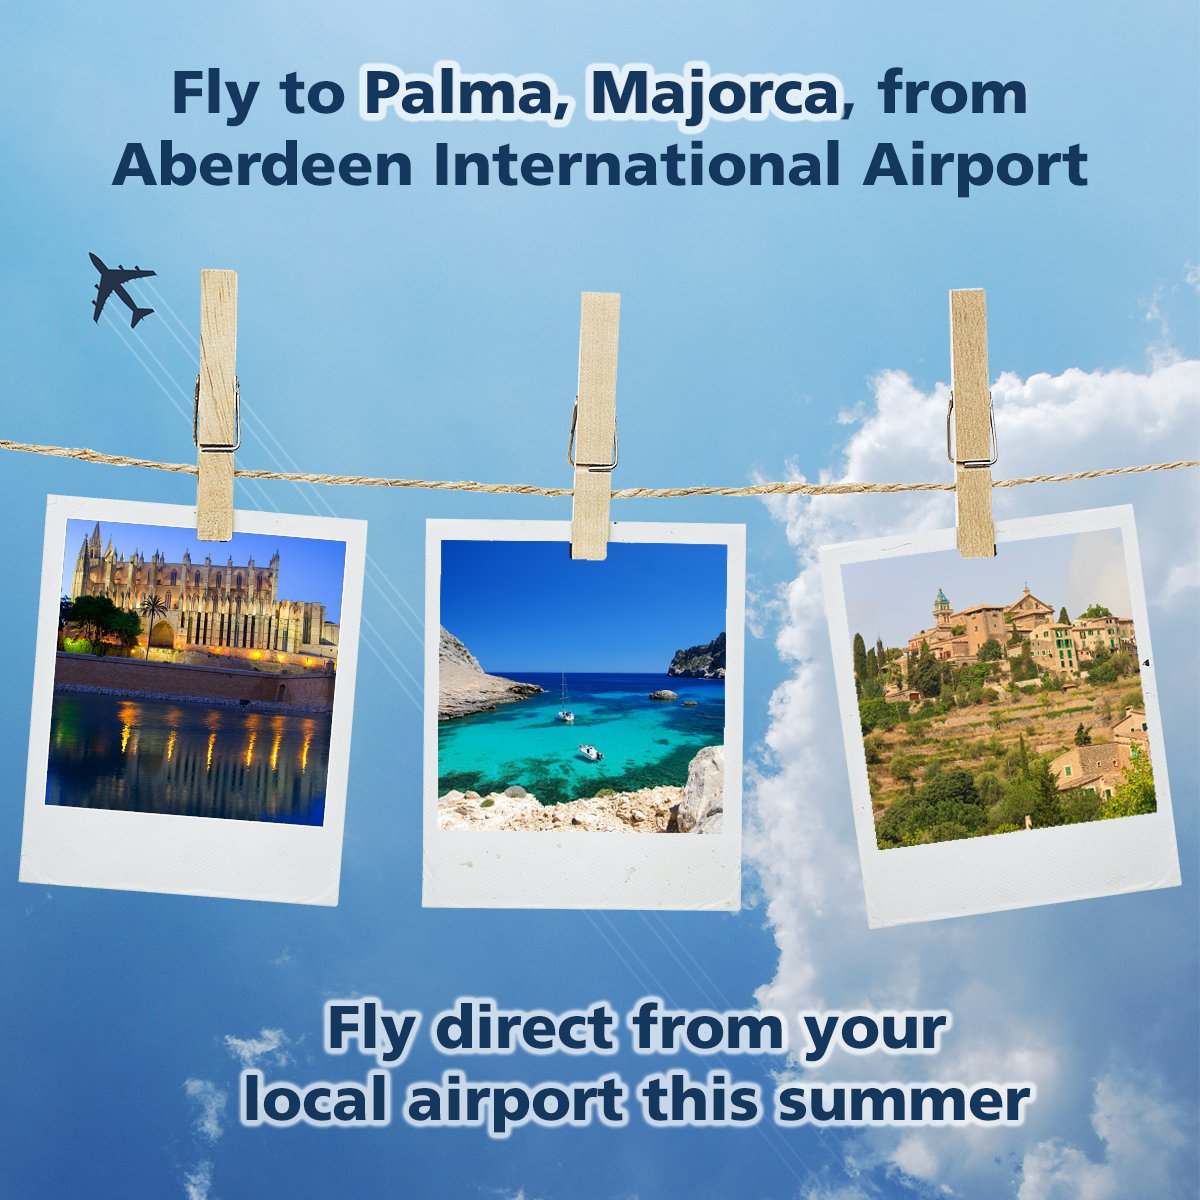 Fly direct to Majorca from your local airport this summer!